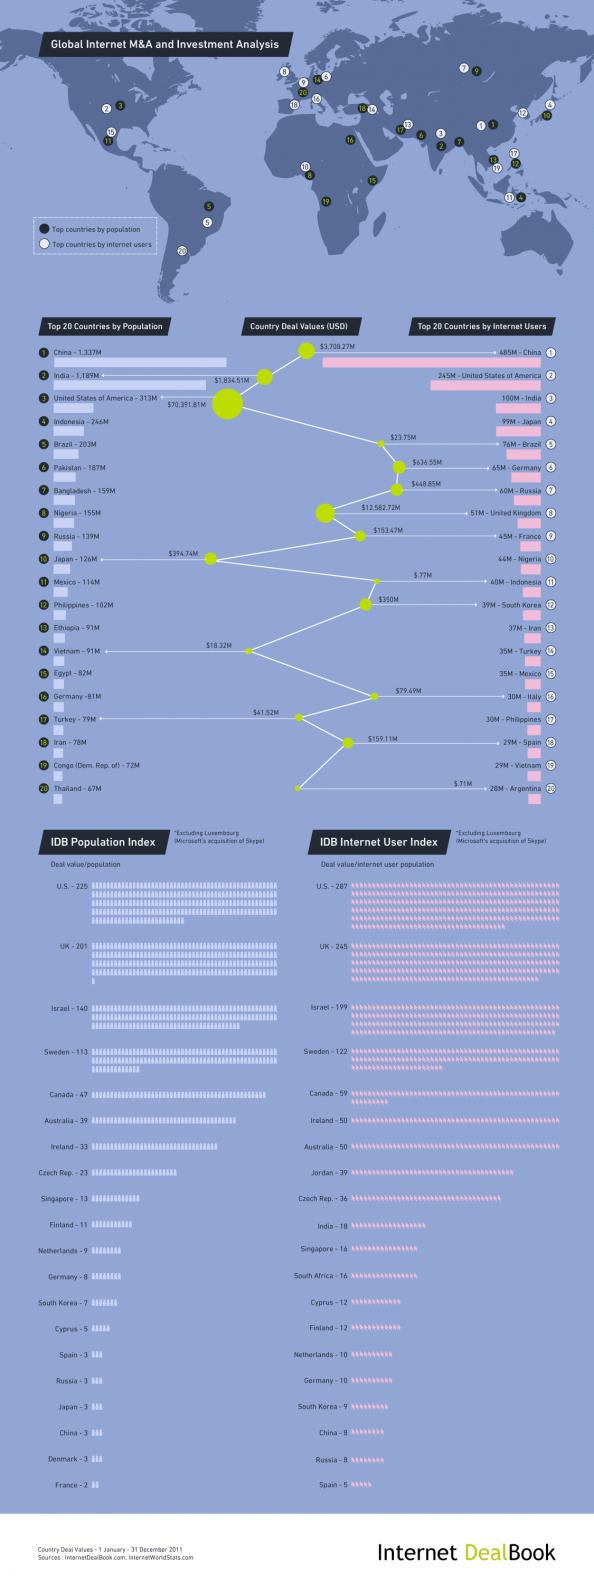 Global Internet M&A and Investment Infographic